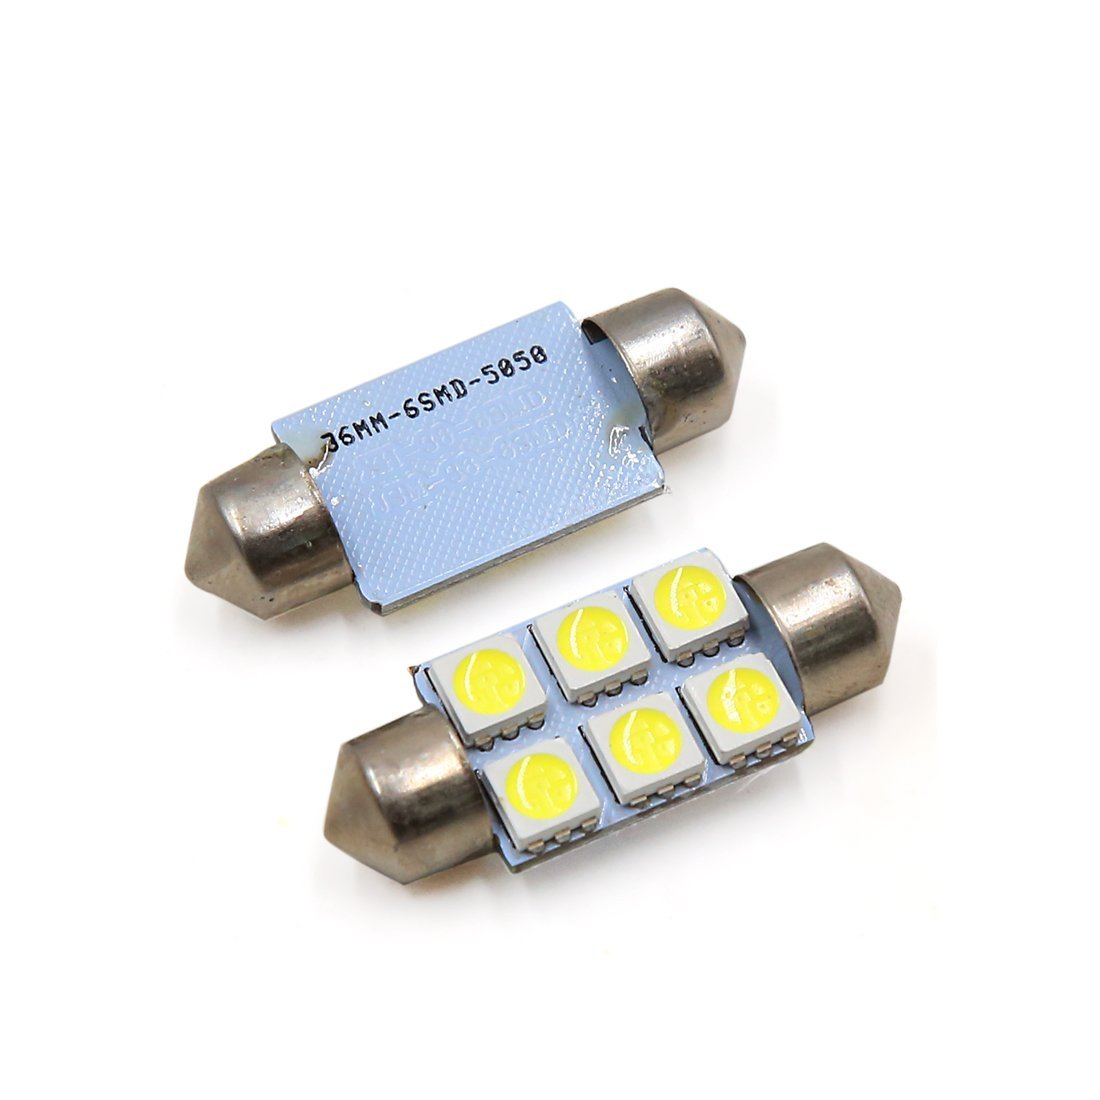 Amazon.com: eDealMax 20pcs 36mm 6 LED 5050 SMD de bóveda del Adorno coche de la luz Blanca Interior DC 12V: Automotive